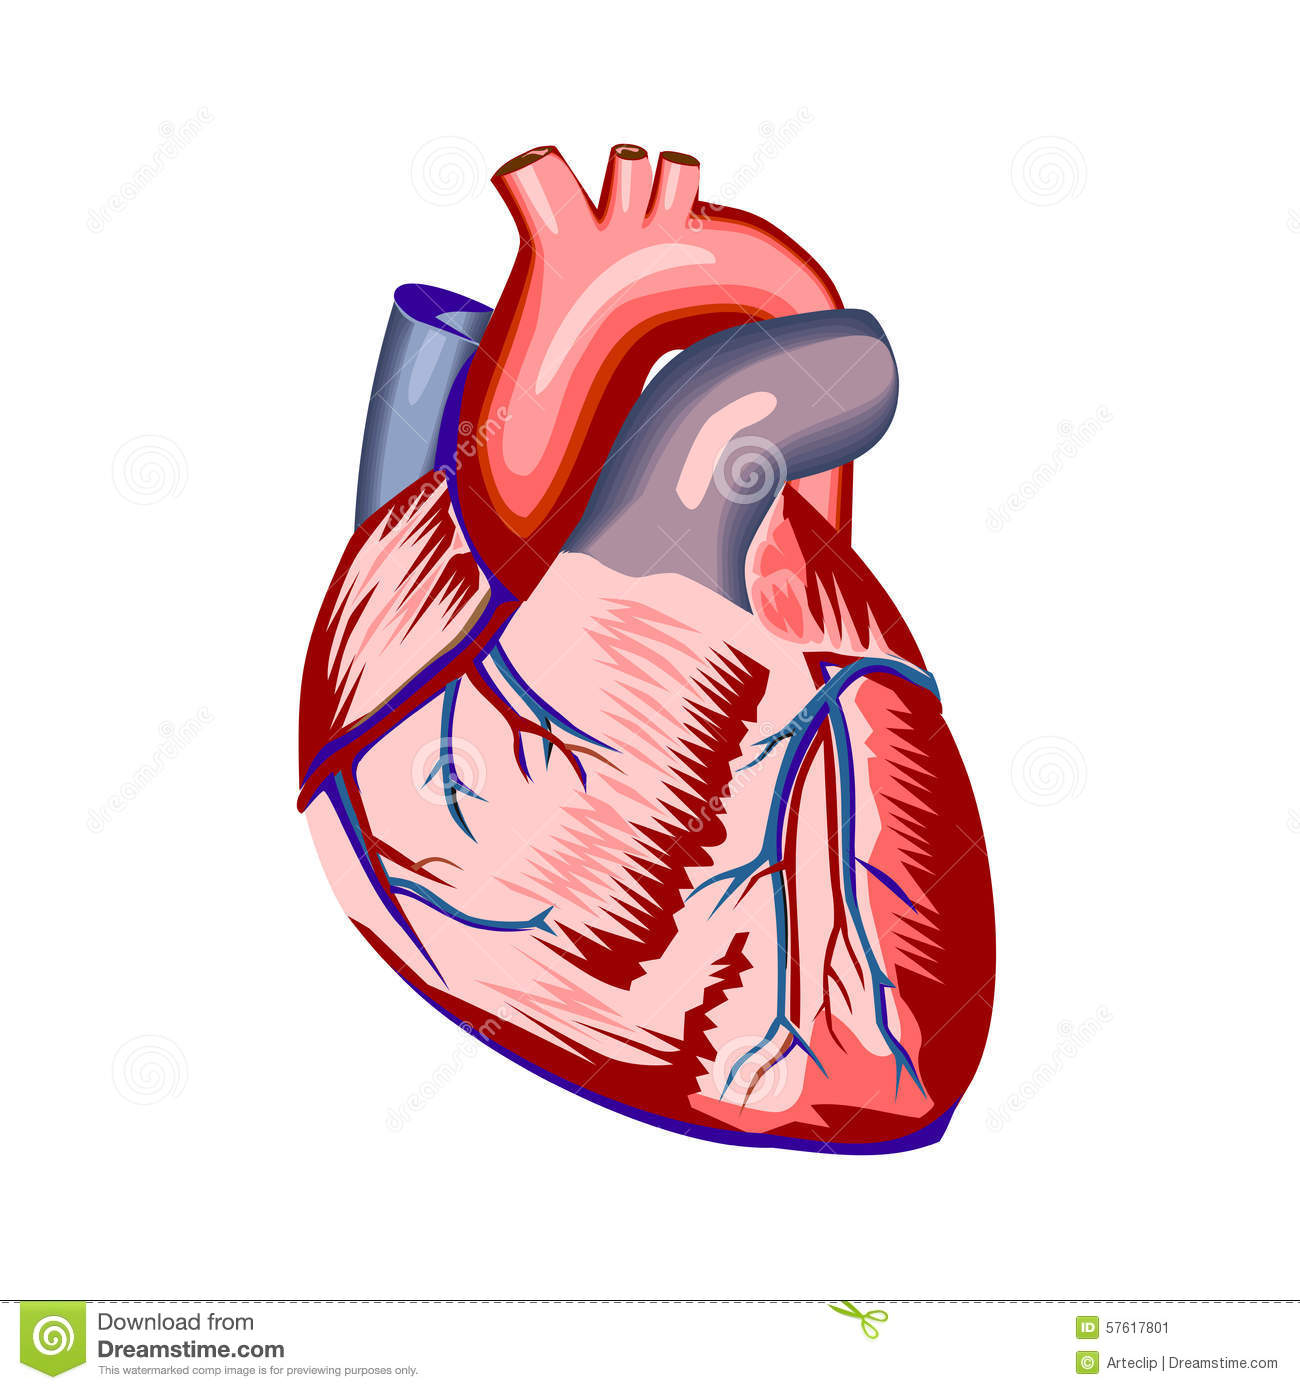 Human Heart Anatomy On White Stock Vector Illustration Of Love